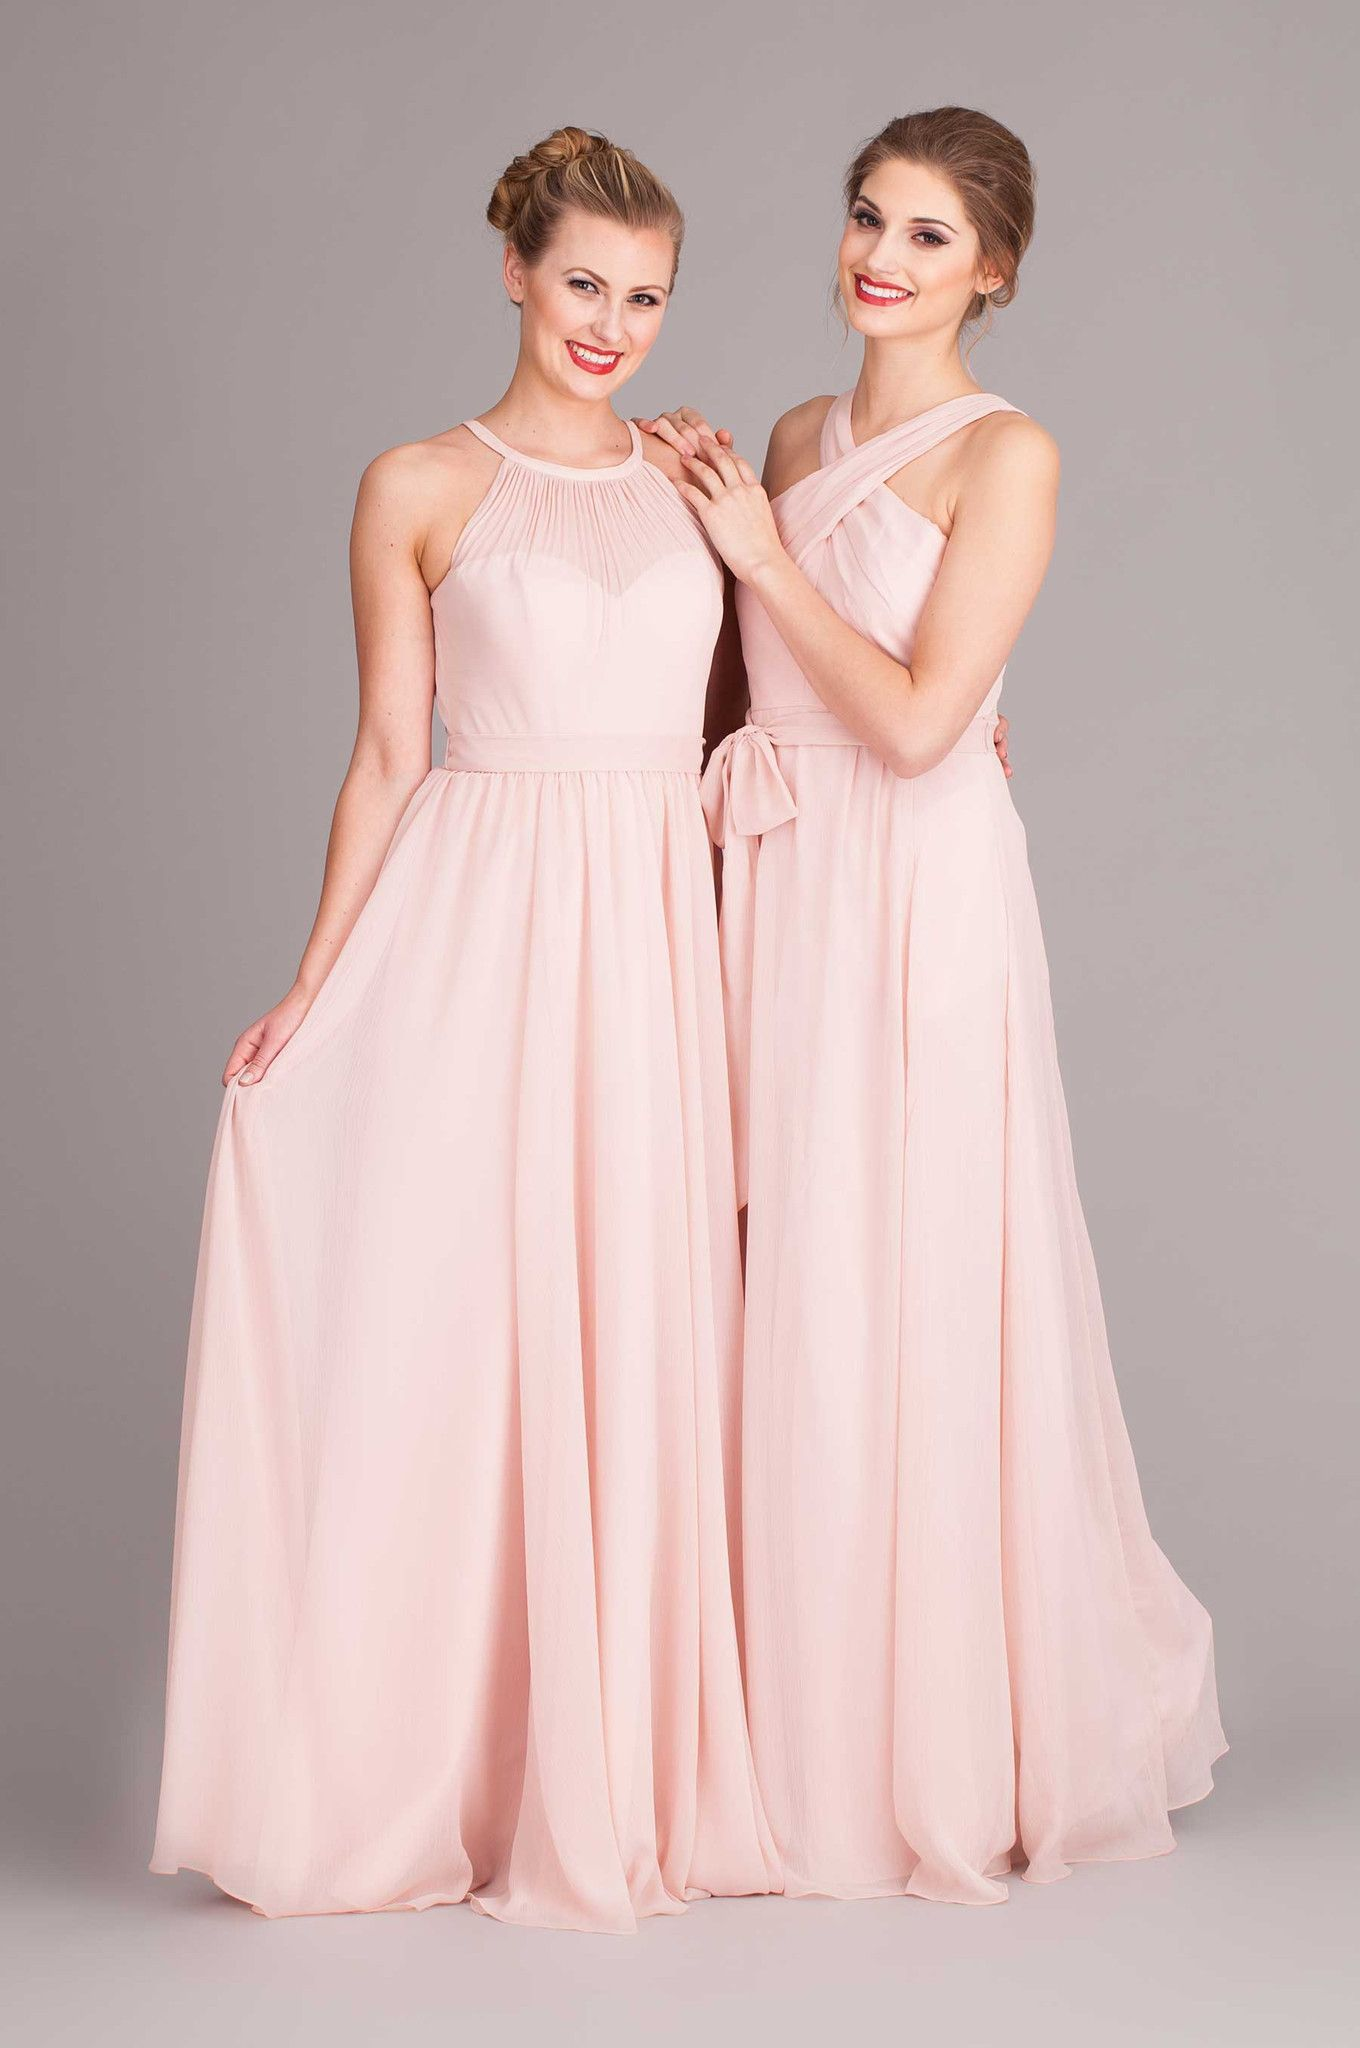 Kylee chiffon bridesmaid dresses wedding and illusion neckline blush bridesmaid dresses mix and match high necklines kennedy blue kylee and stella ombrellifo Image collections